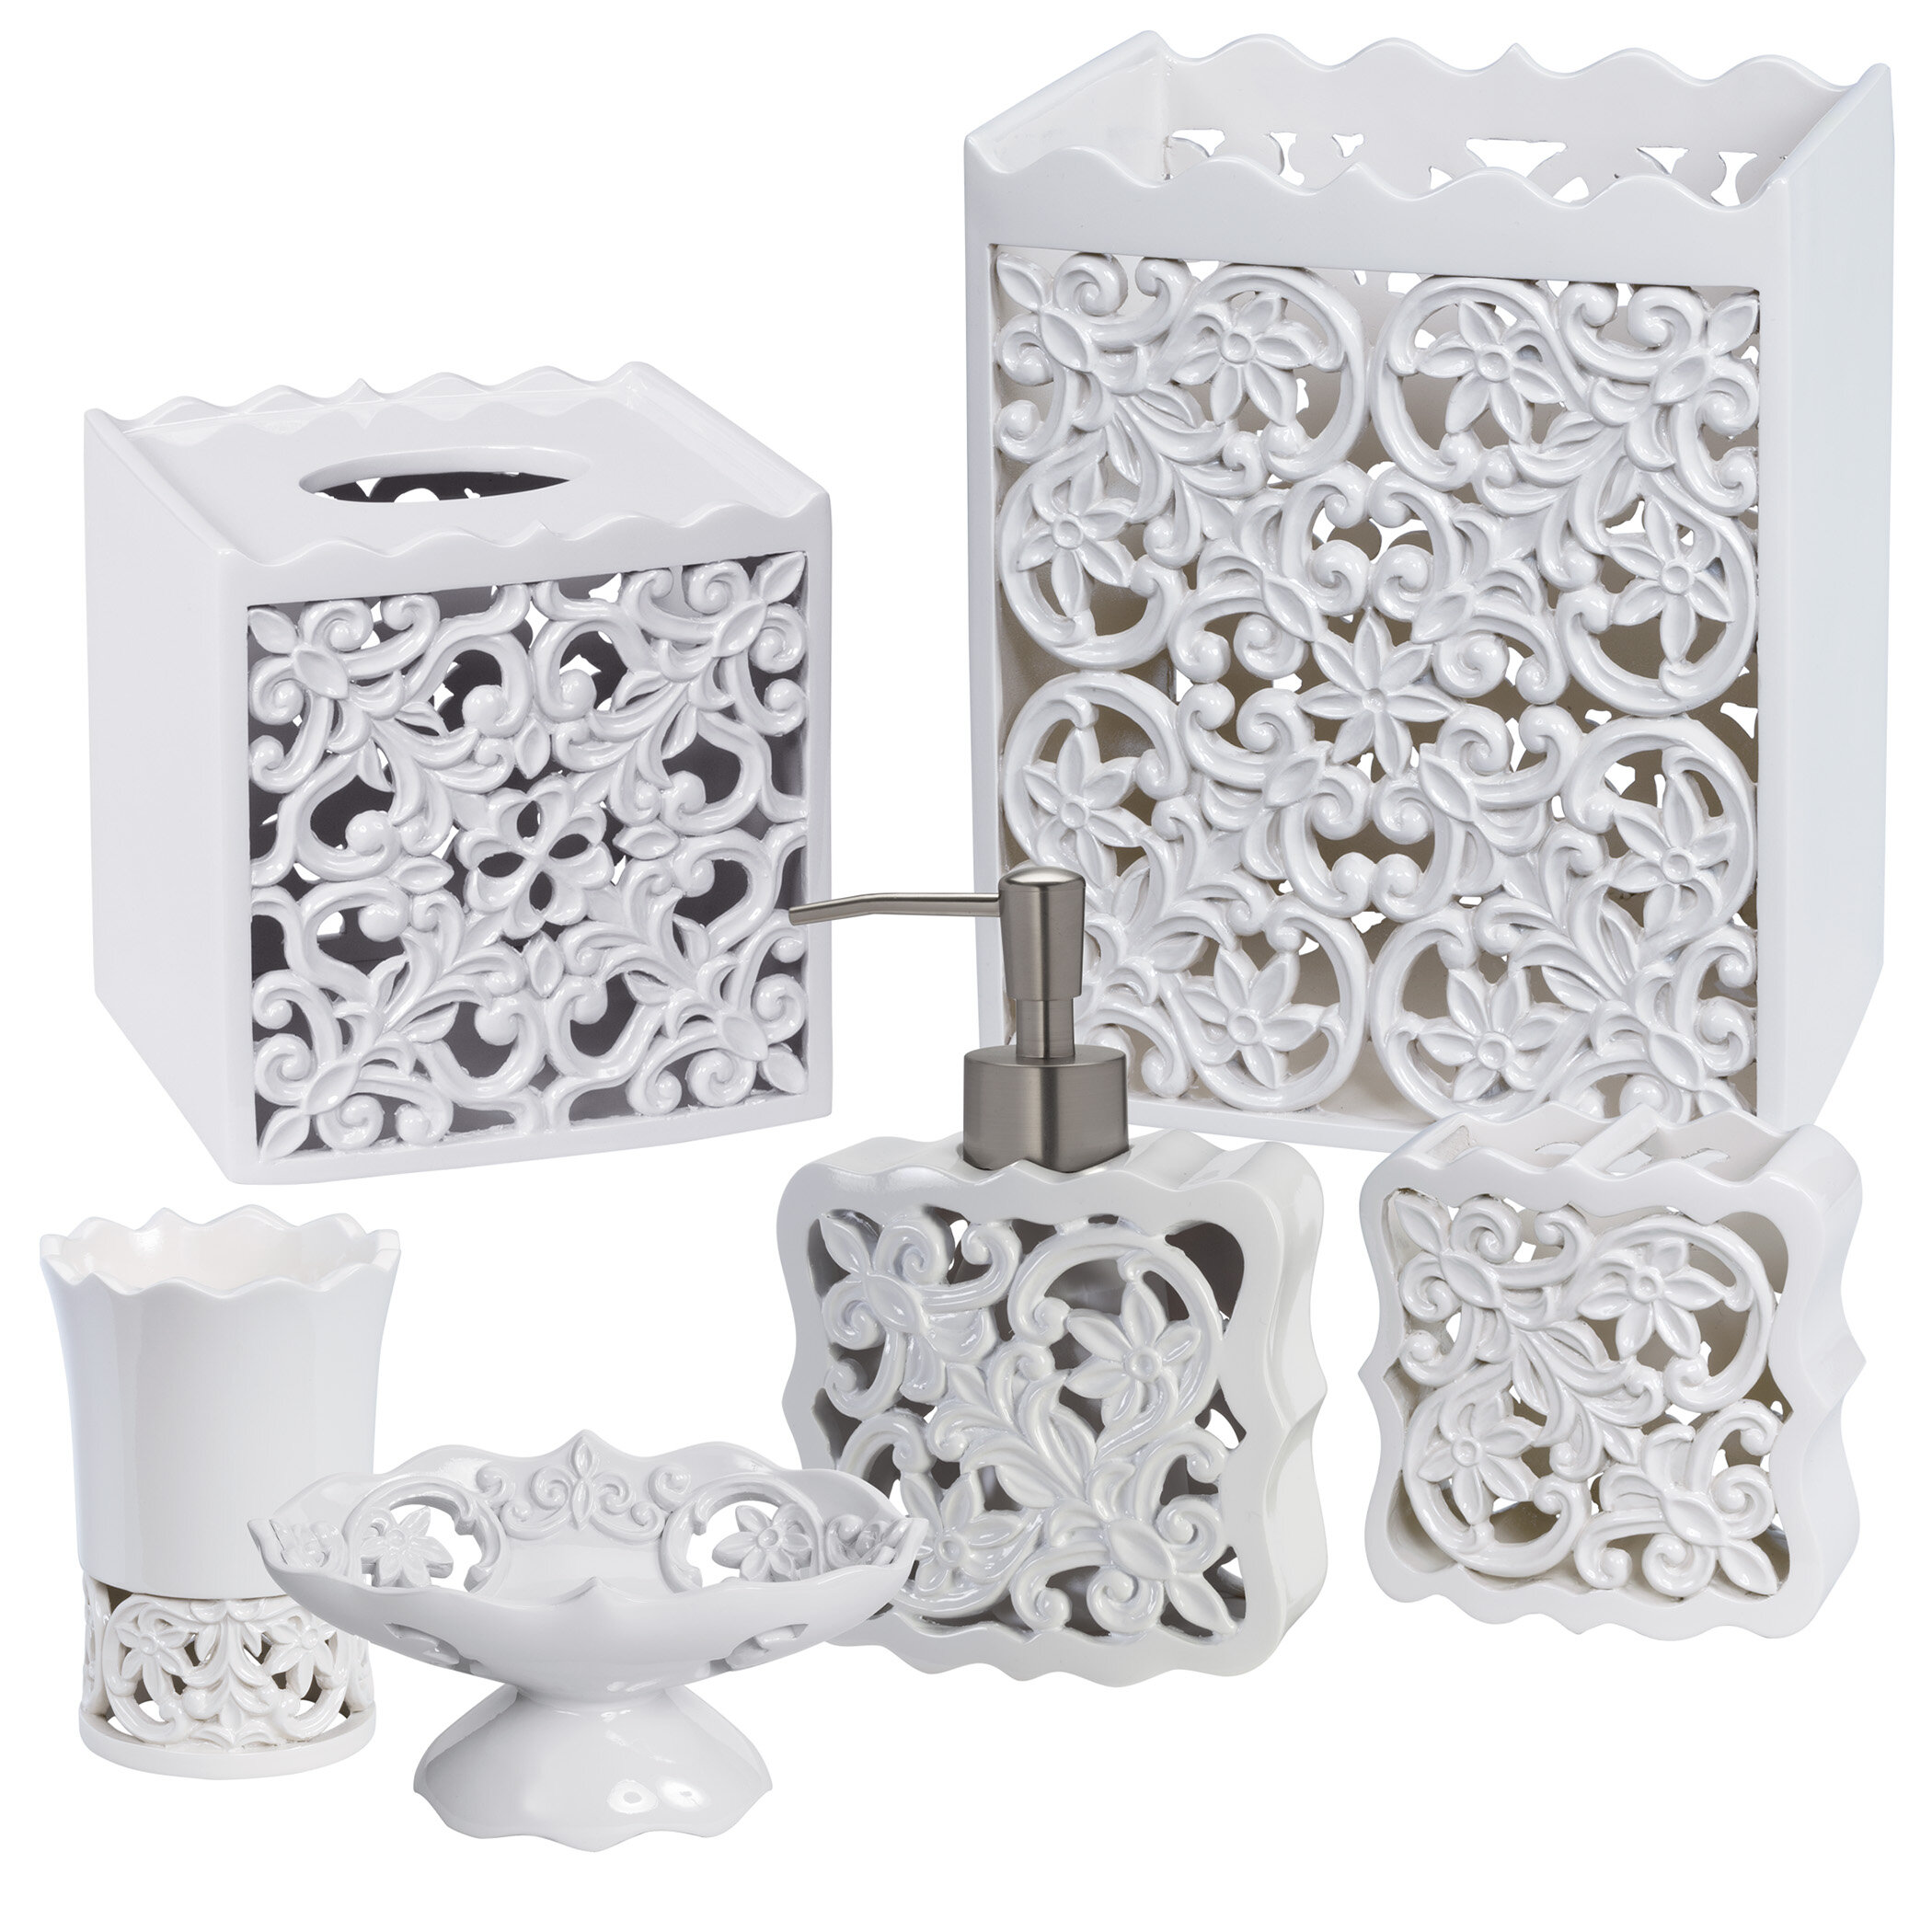 6 PC SET 3D VICTORIAN WHITE+GOLD DISPENSER+TISSUE+TRASH CAN+DISH+TUMBLER+TOOTHBR